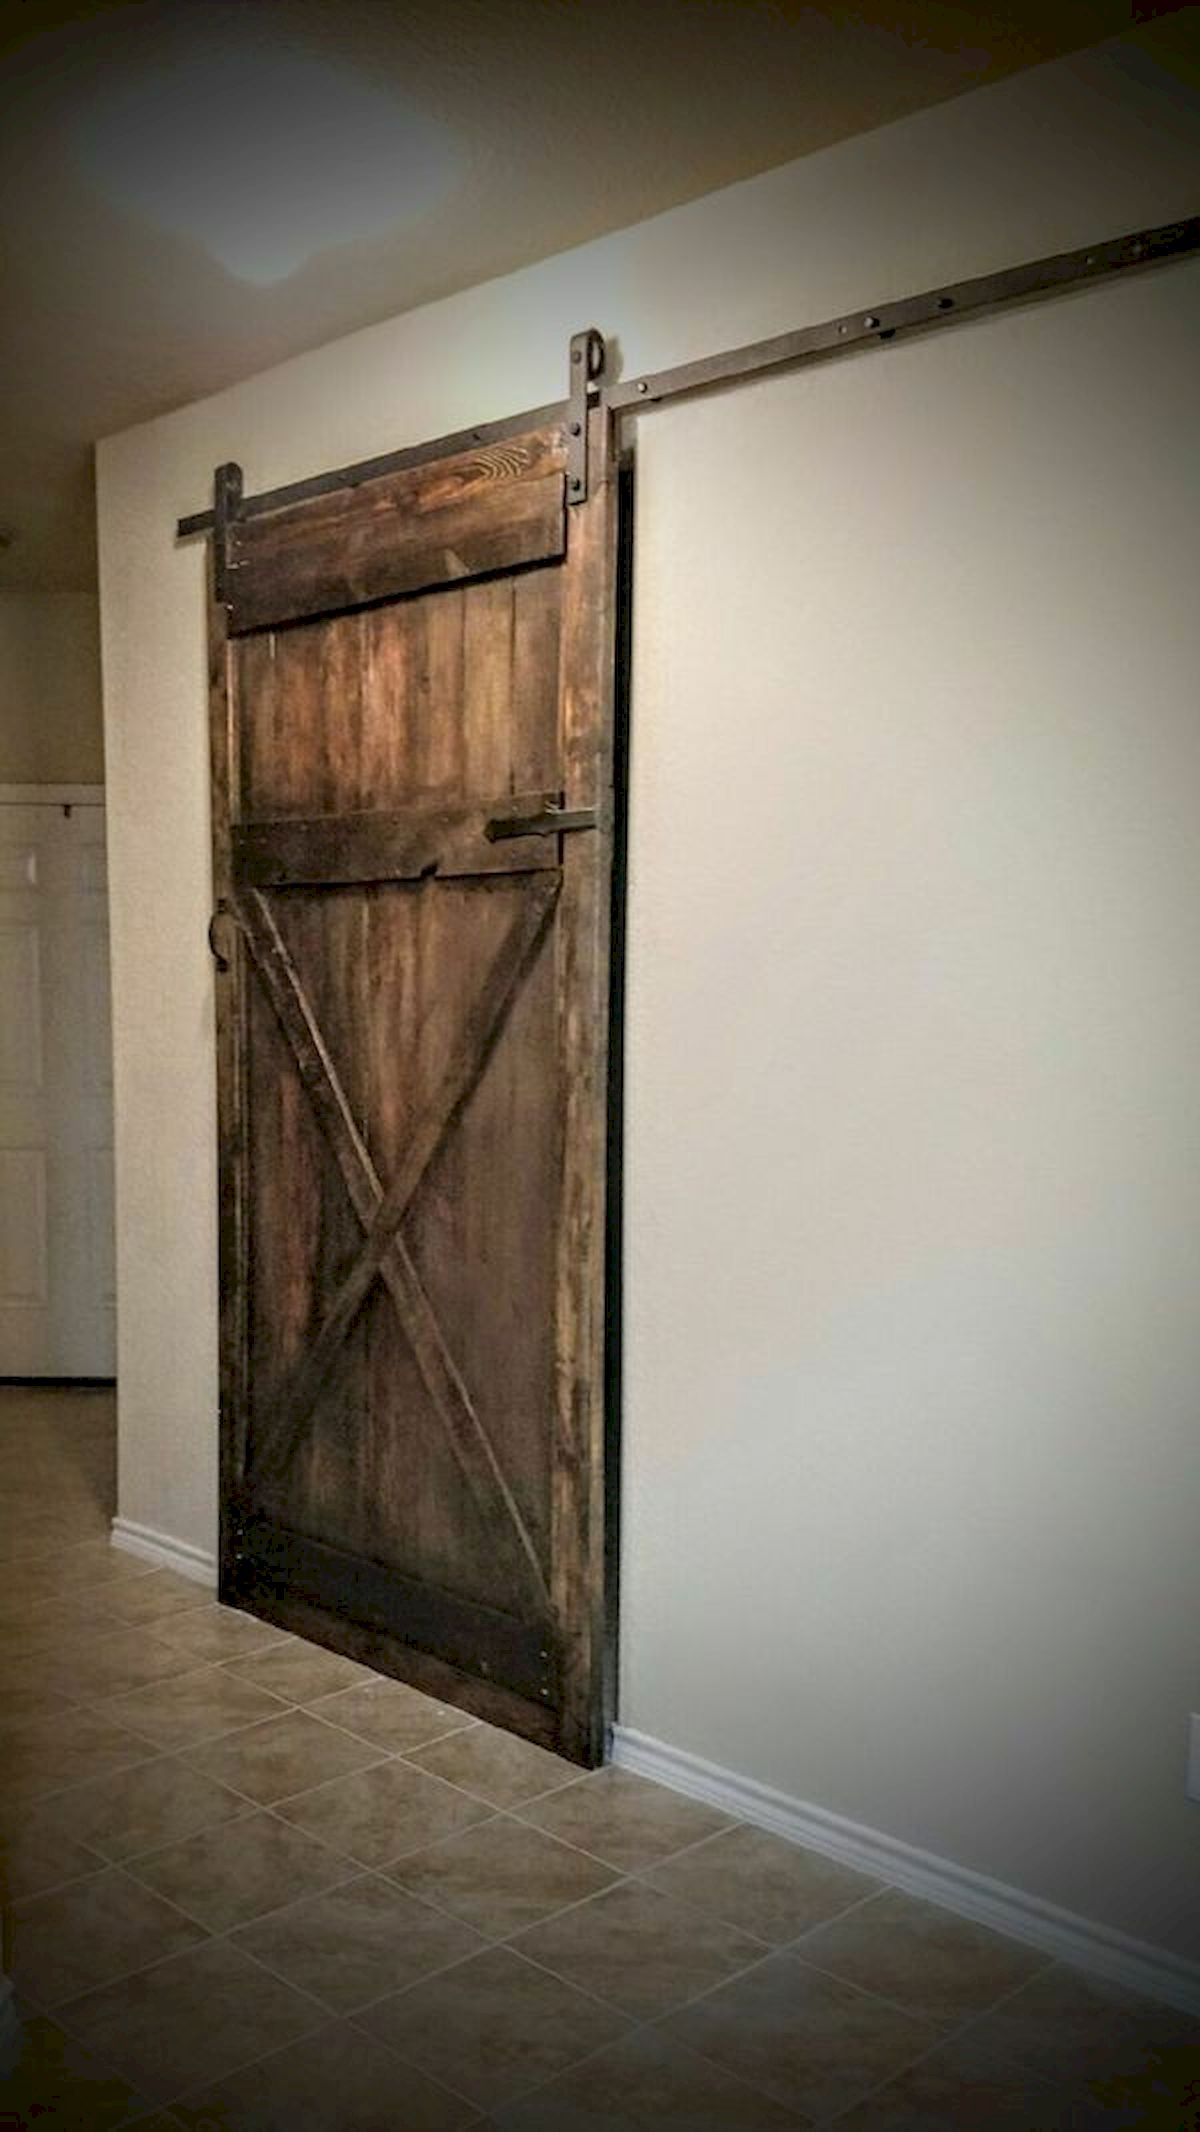 70 Rustic Home Decor Ideas for Doors and Windows (24)